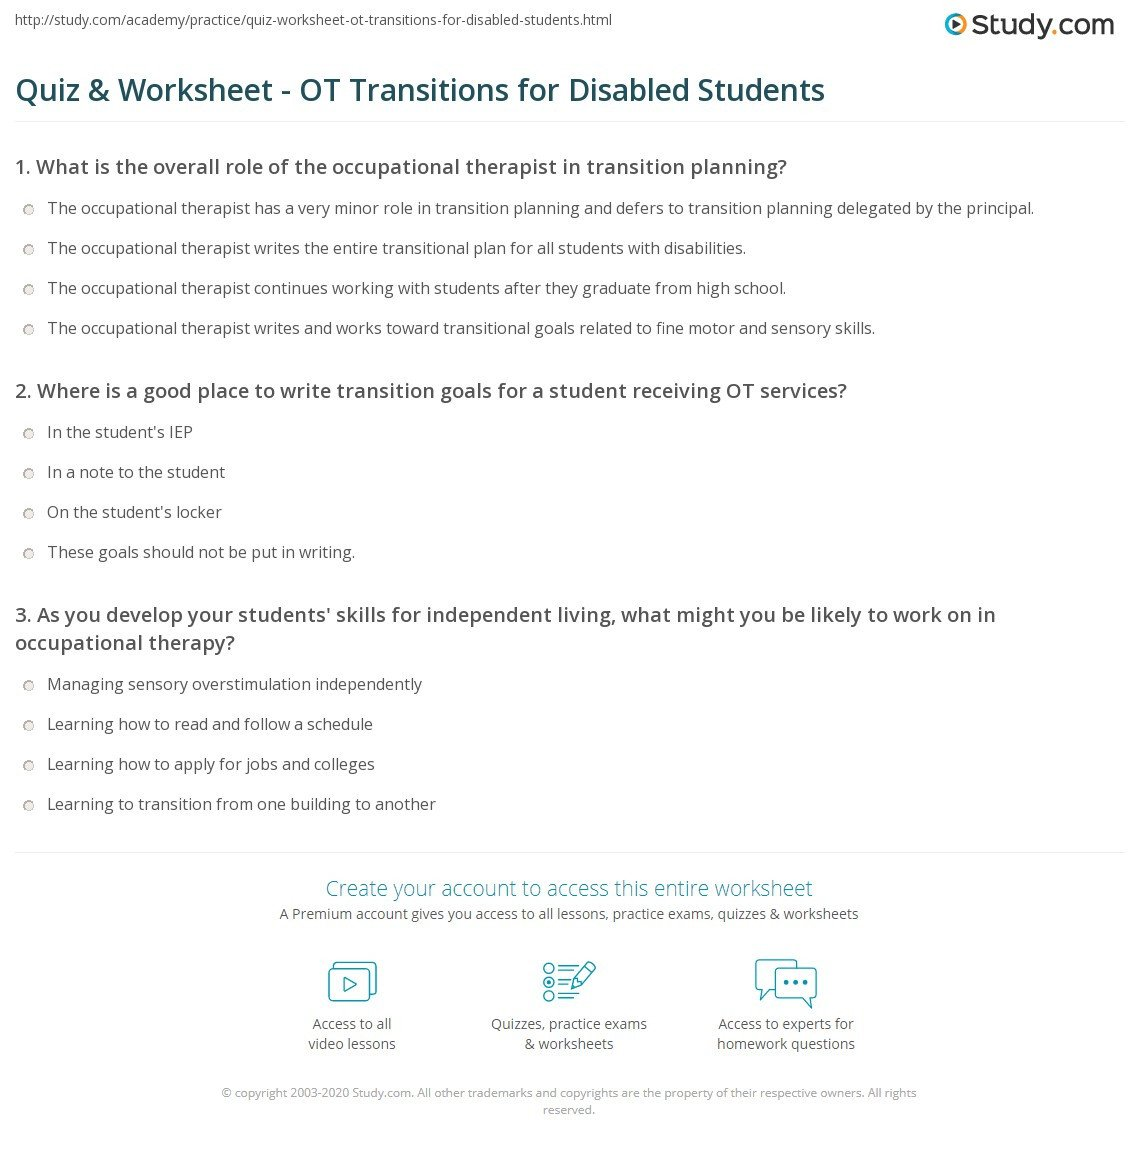 quiz worksheet ot transitions for disabled students